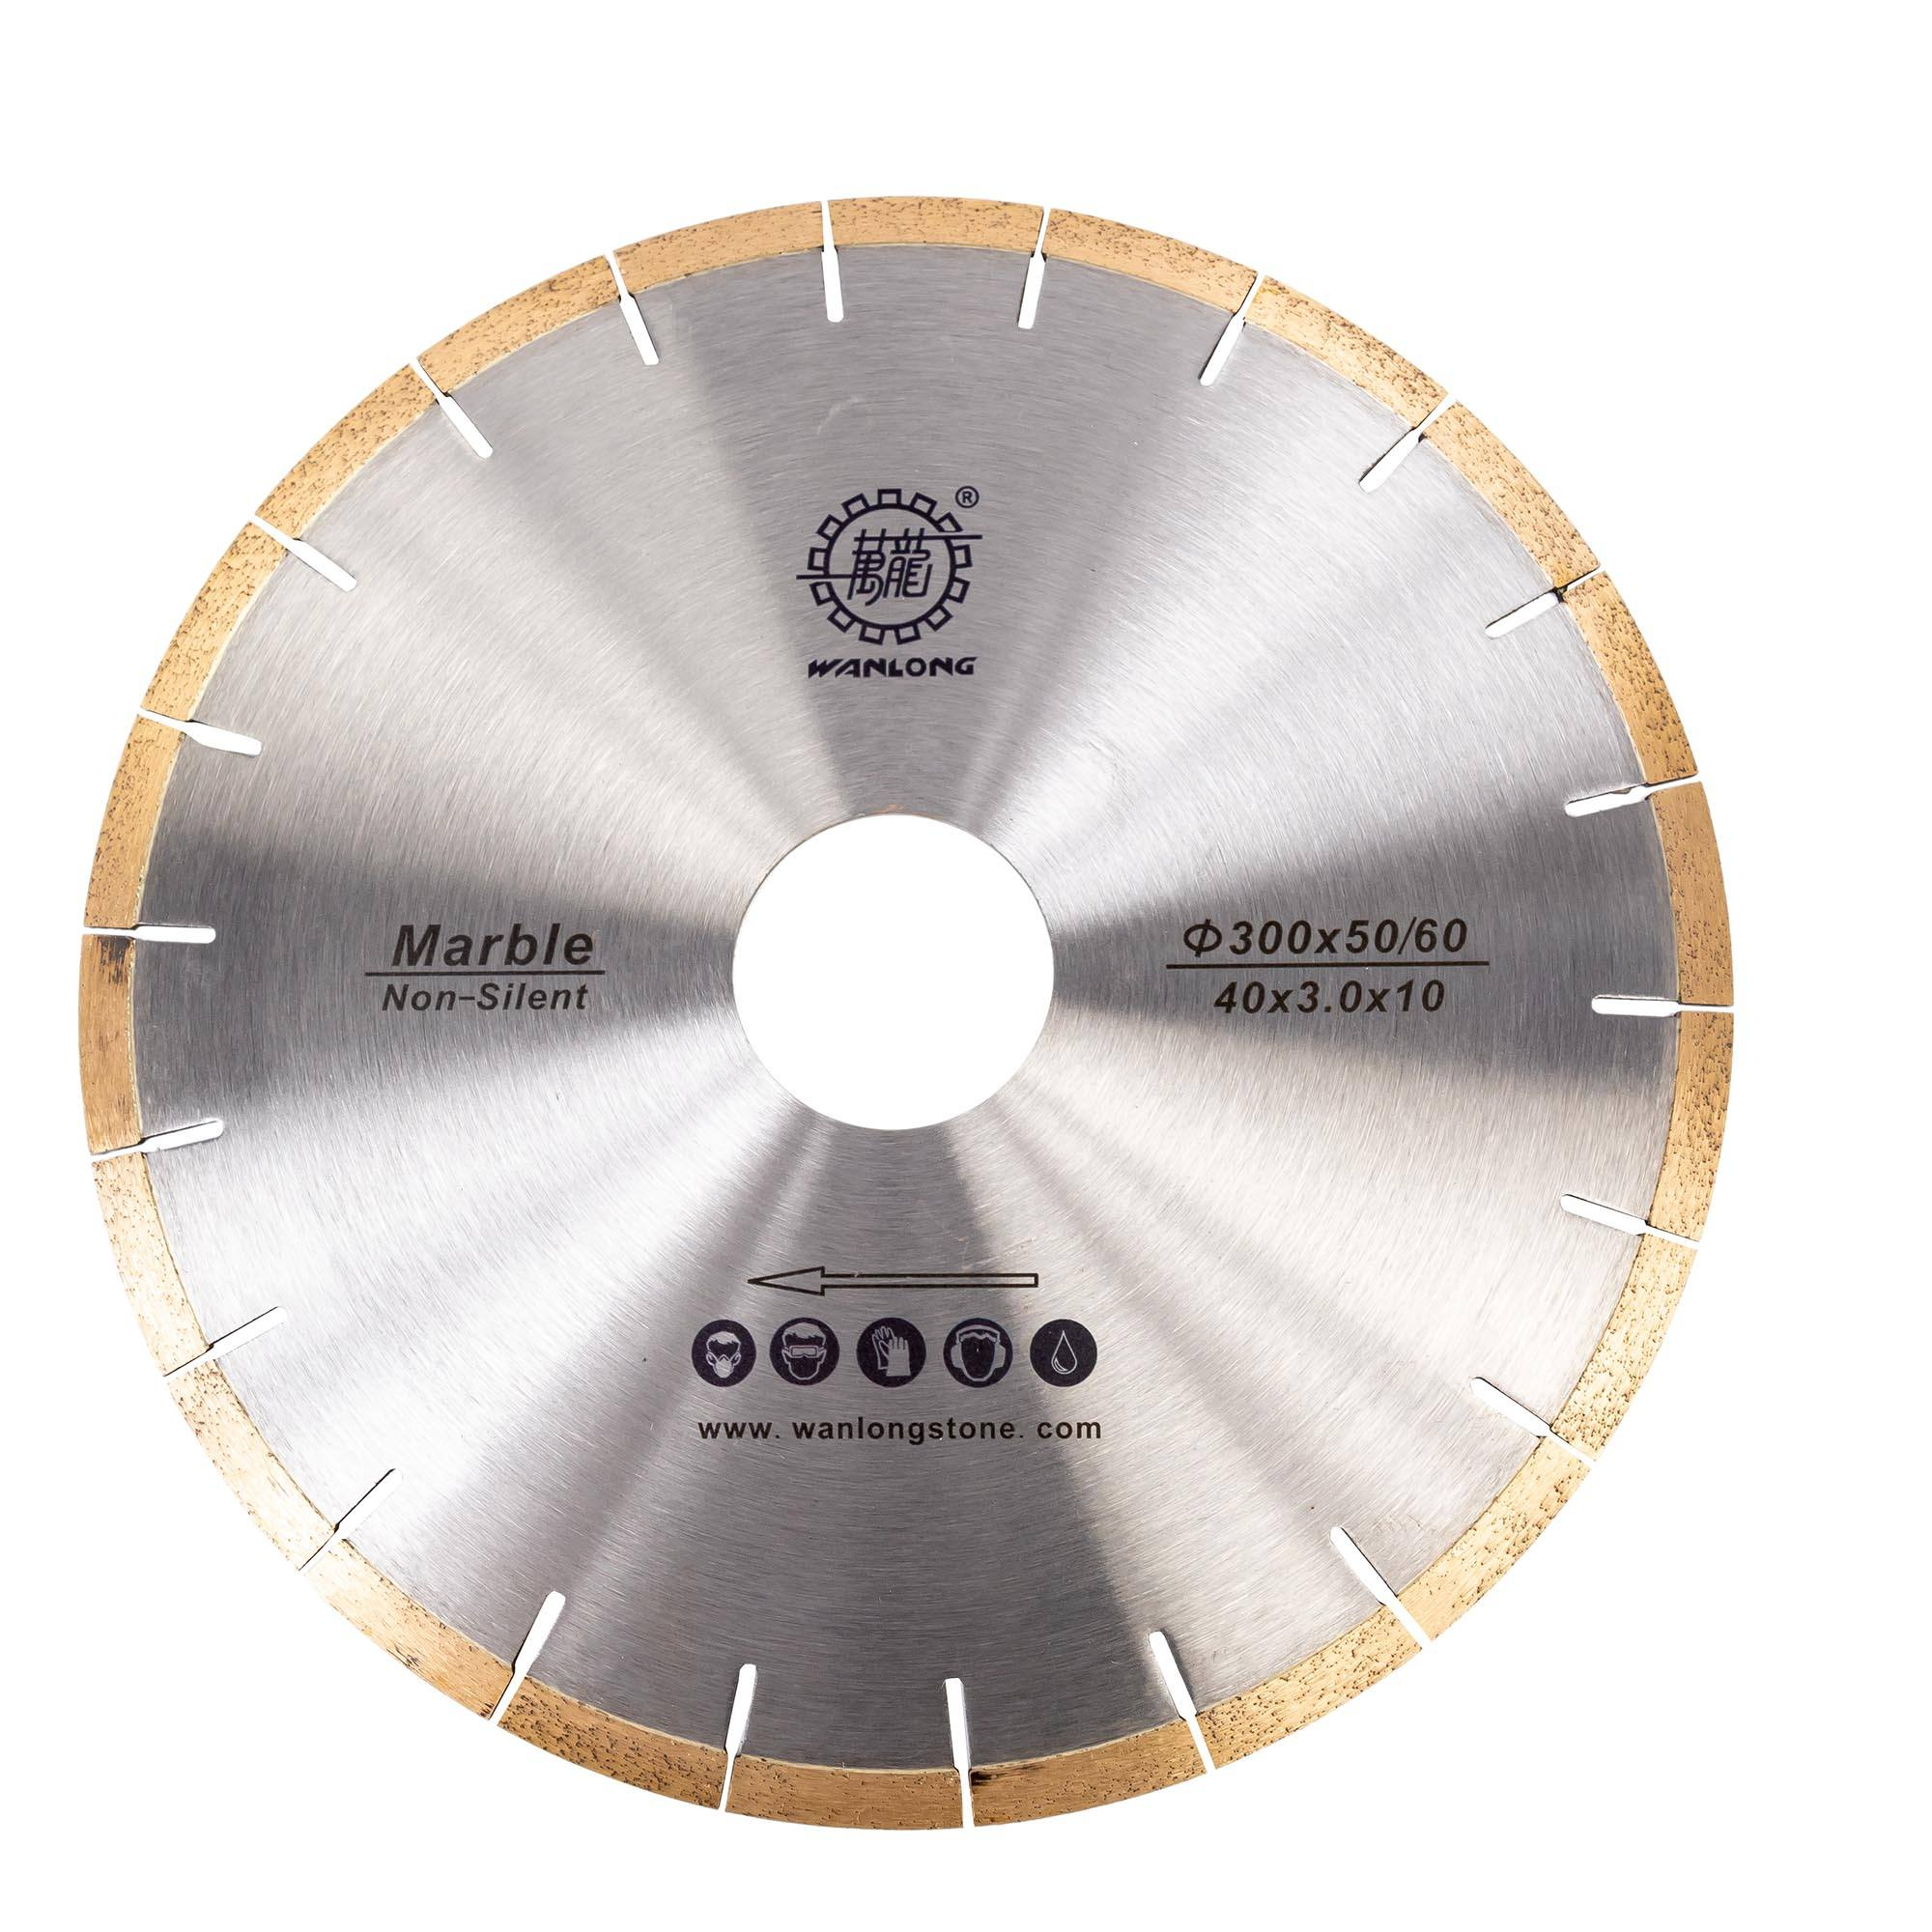 China factory direct sale best quality 18 inch marble granite stone diamond cutting blades diamond saw blade for granite